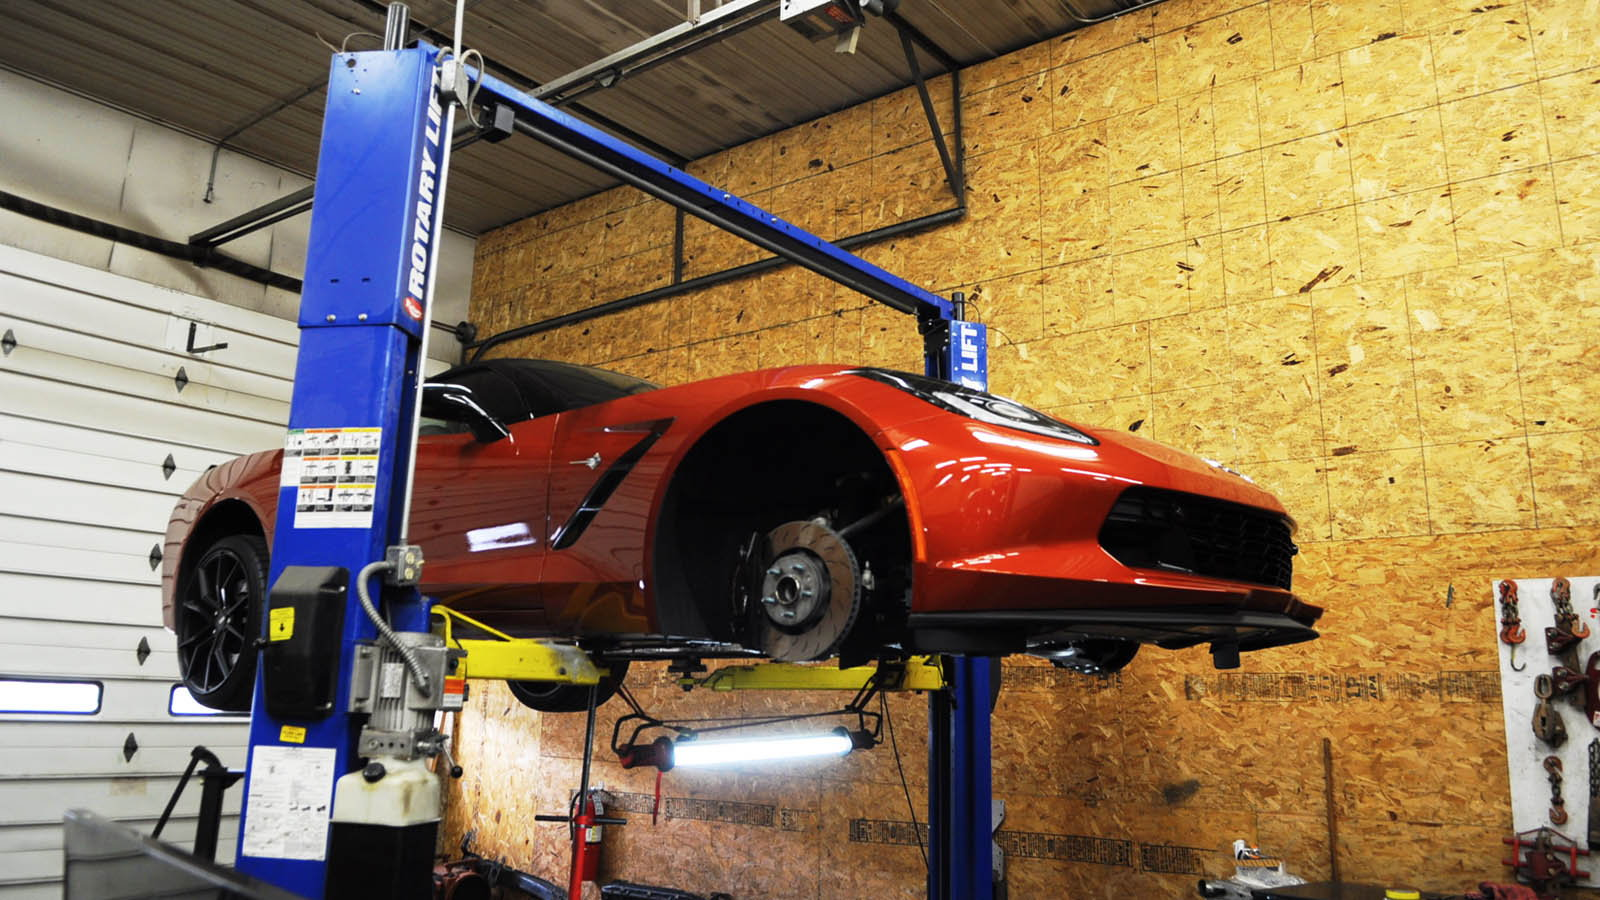 8 Tips for Keeping Your Corvette in Top Shape